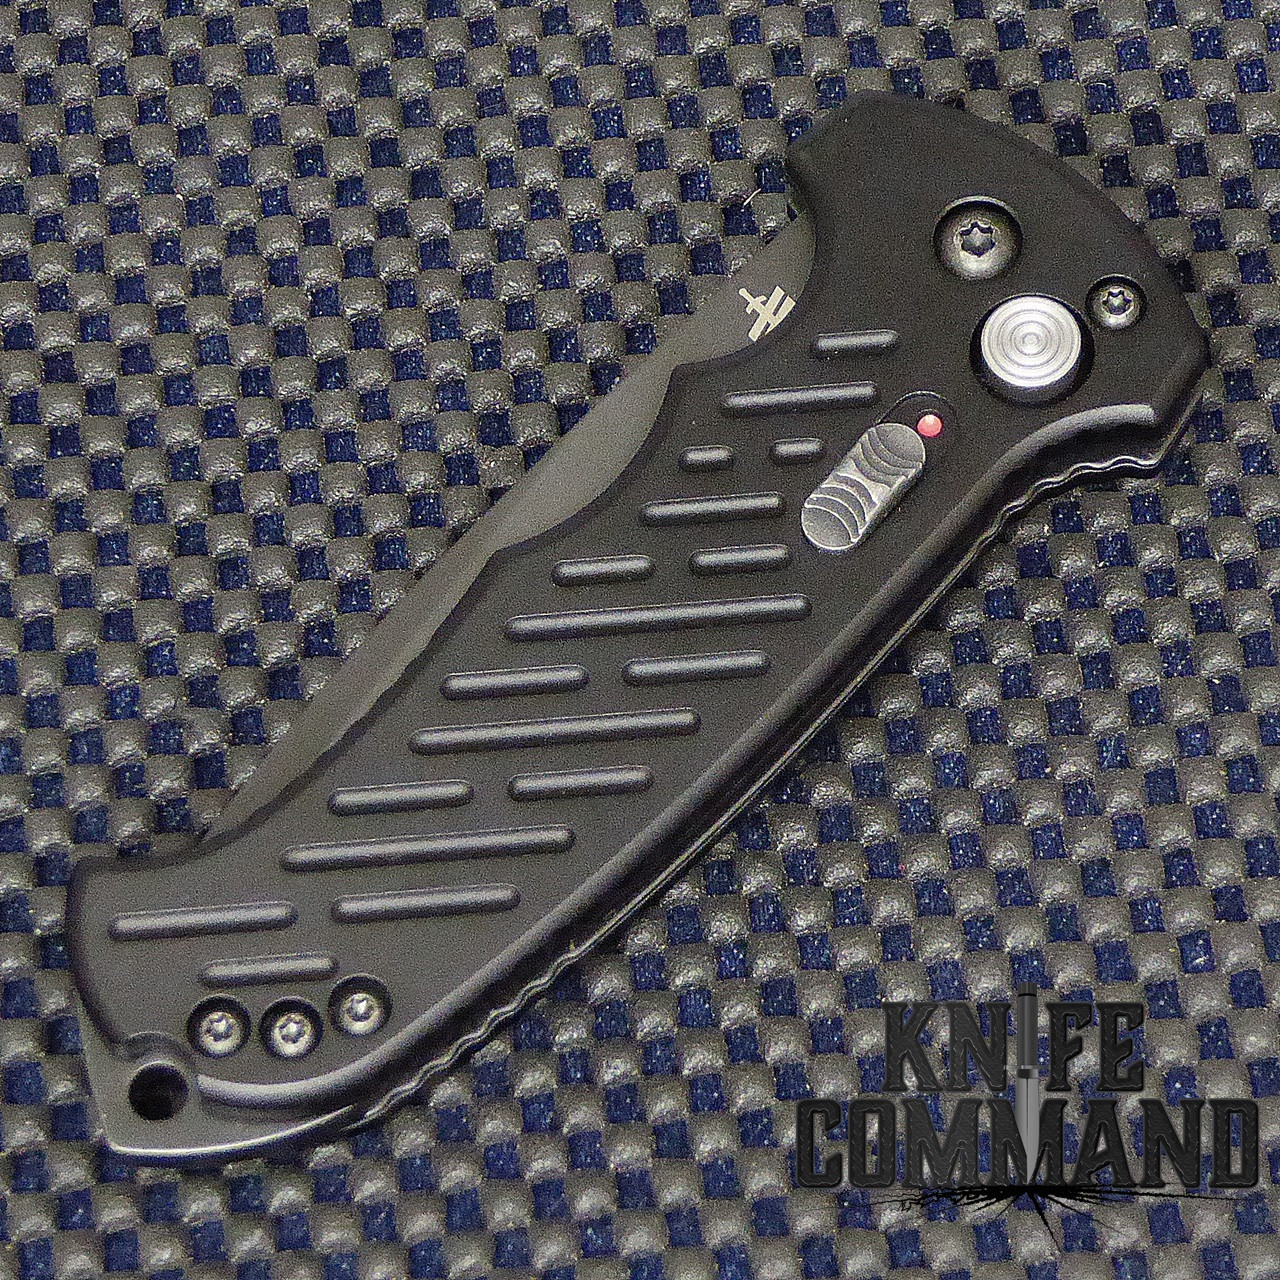 Gerber 06 Auto Tanto Blade Automatic Knife Plain Edge 30-001297.  Safety lock open and closed.